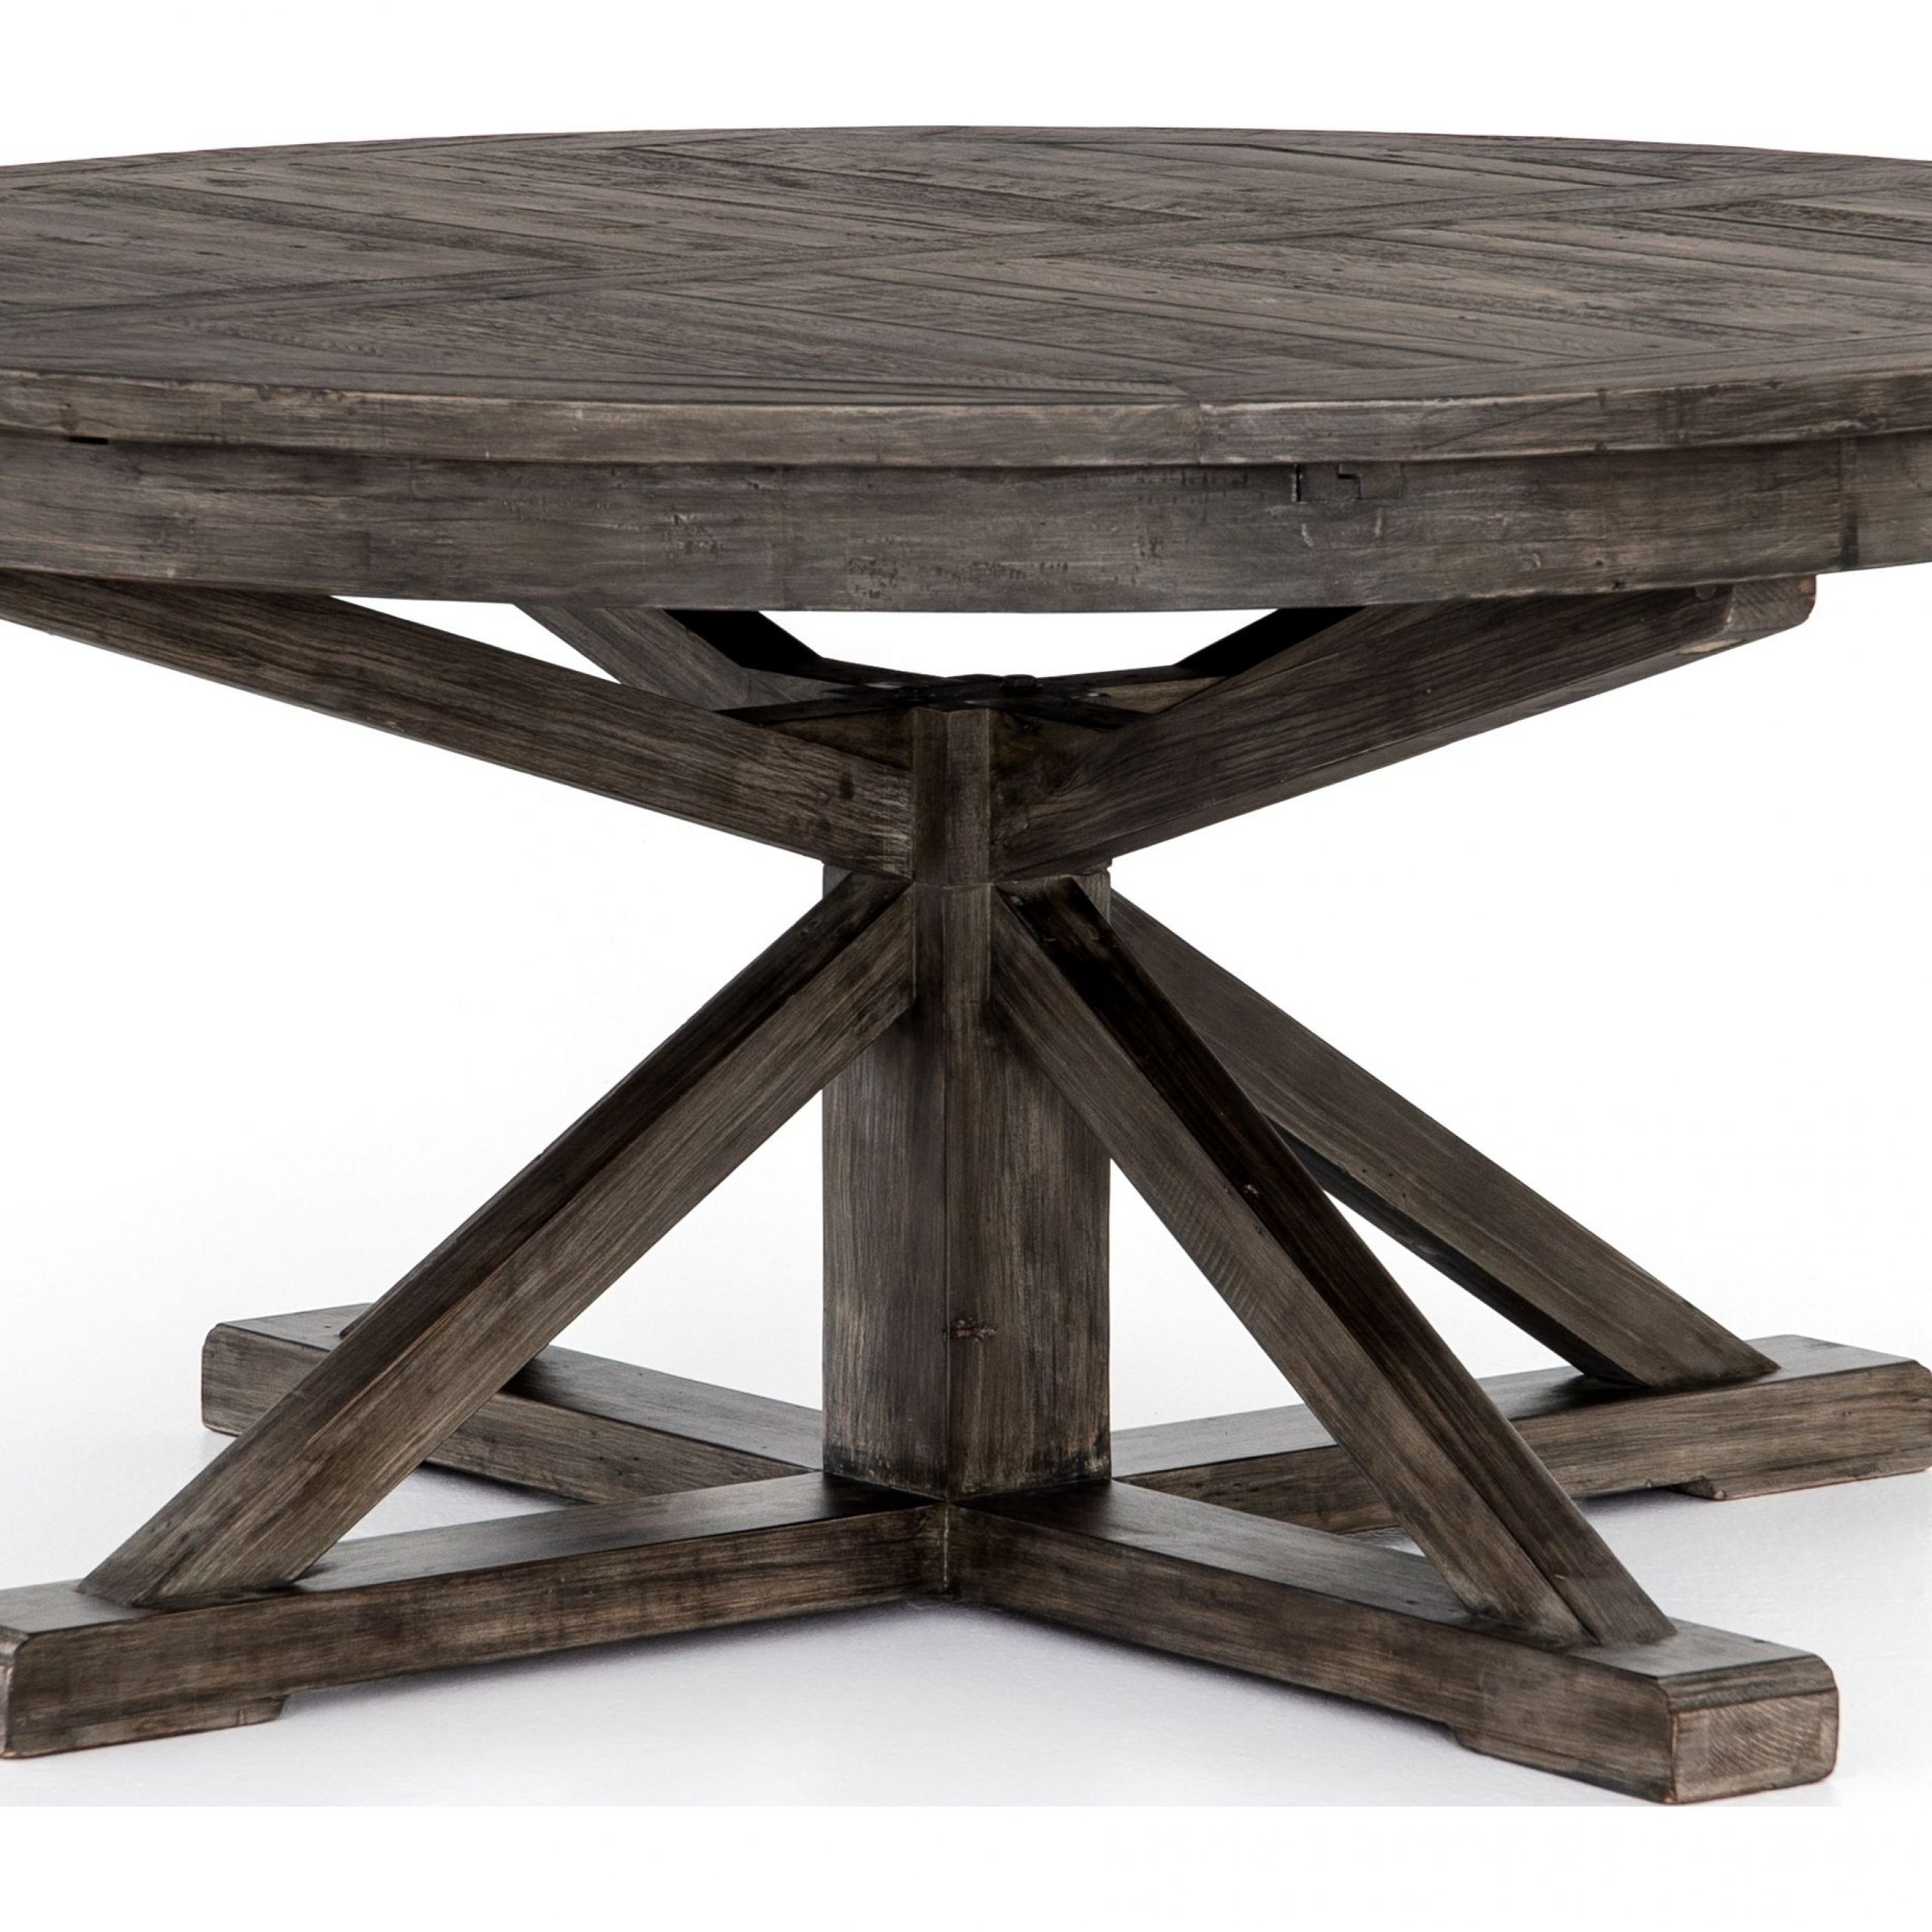 Cintra Rustic Black Olive Extendable Dining Table From Intended For 2018 Bowry Reclaimed Wood Dining Tables (View 21 of 25)